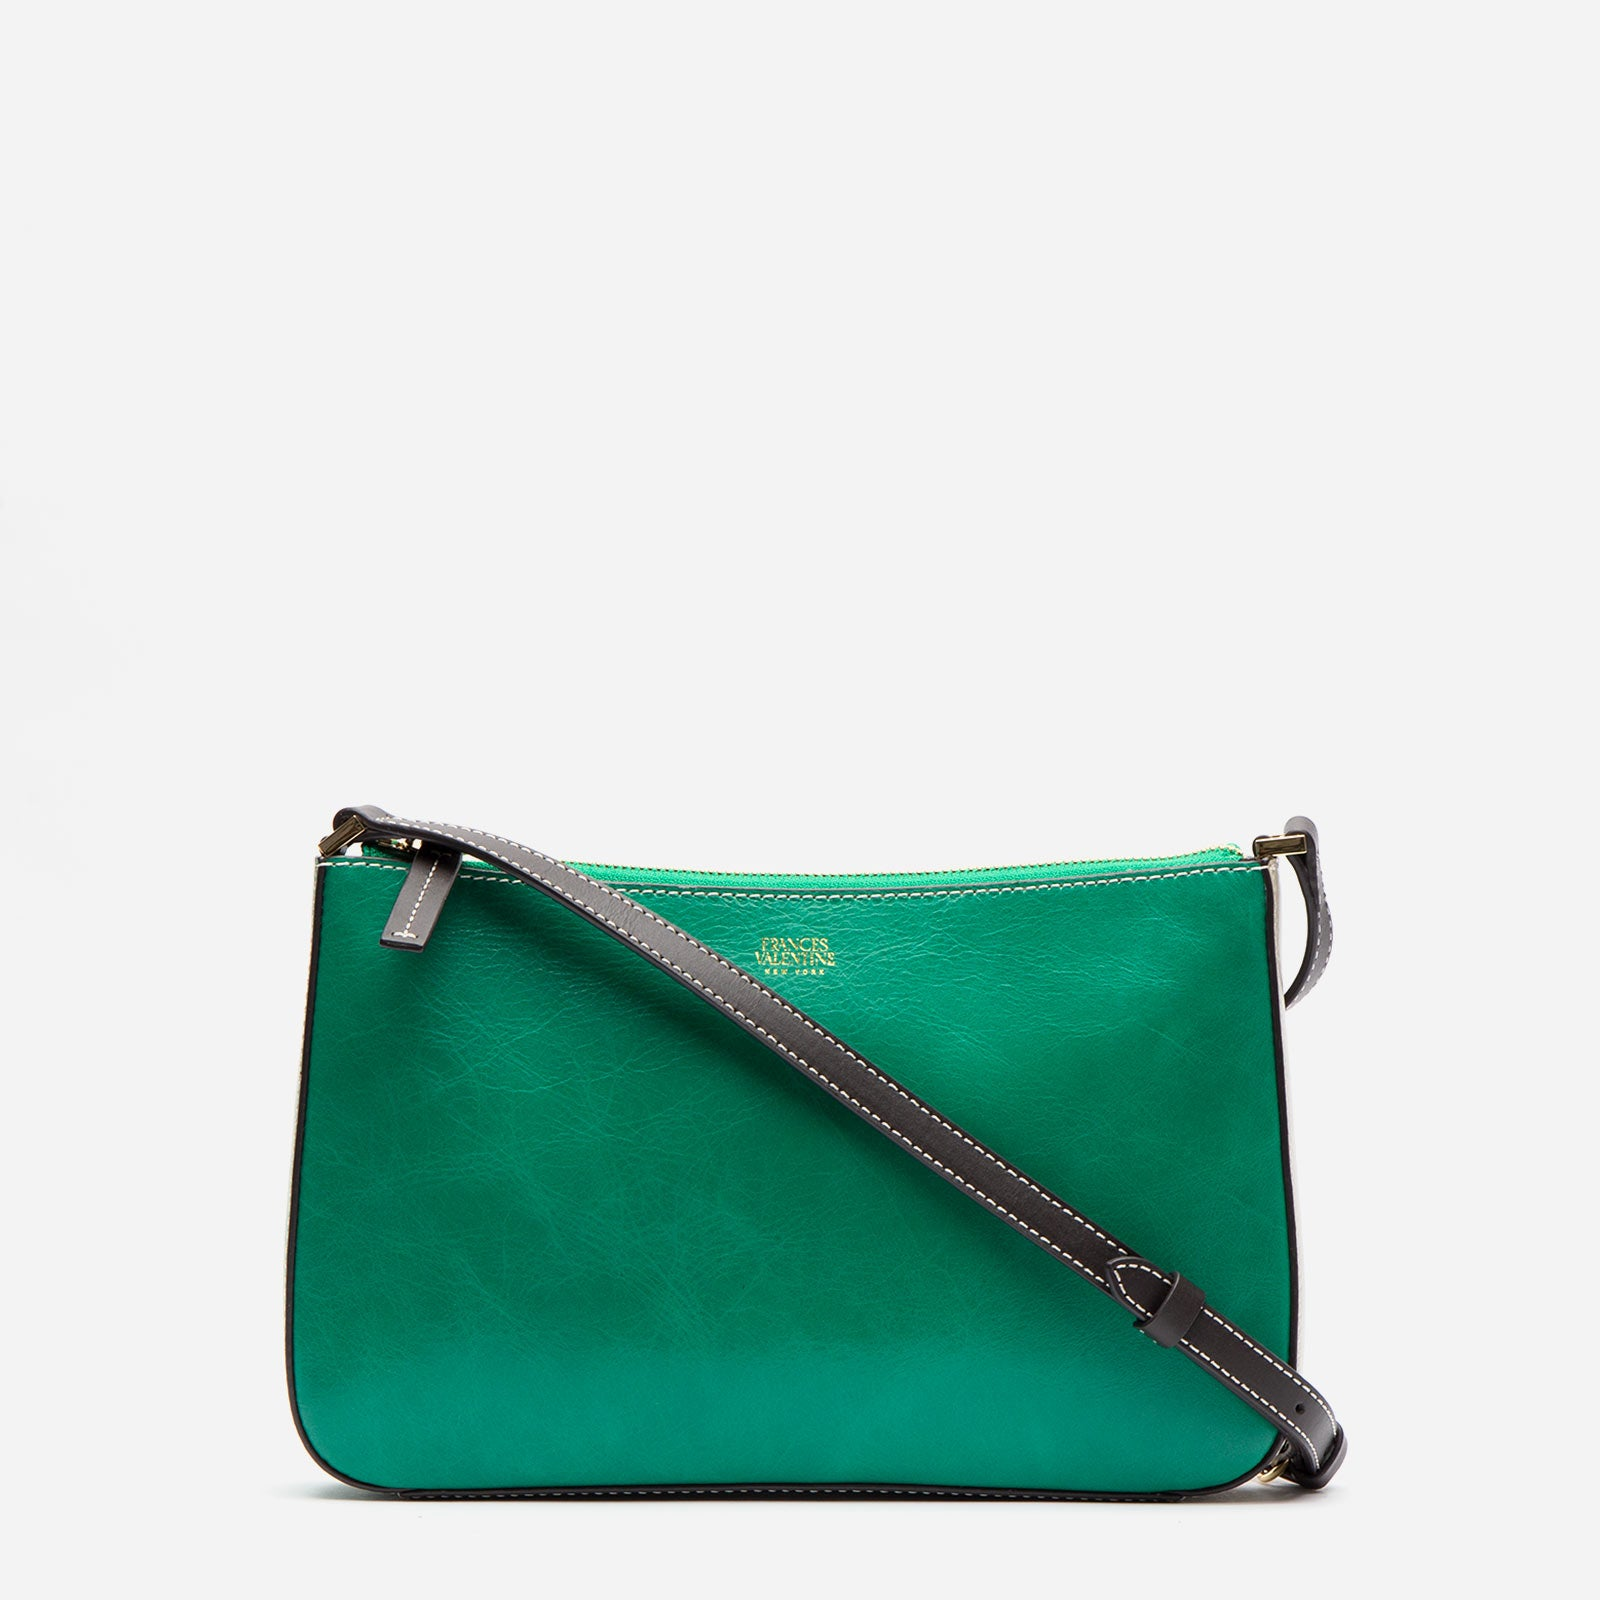 Poppy Crossbody Naplak Leather Green Oyster - Frances Valentine